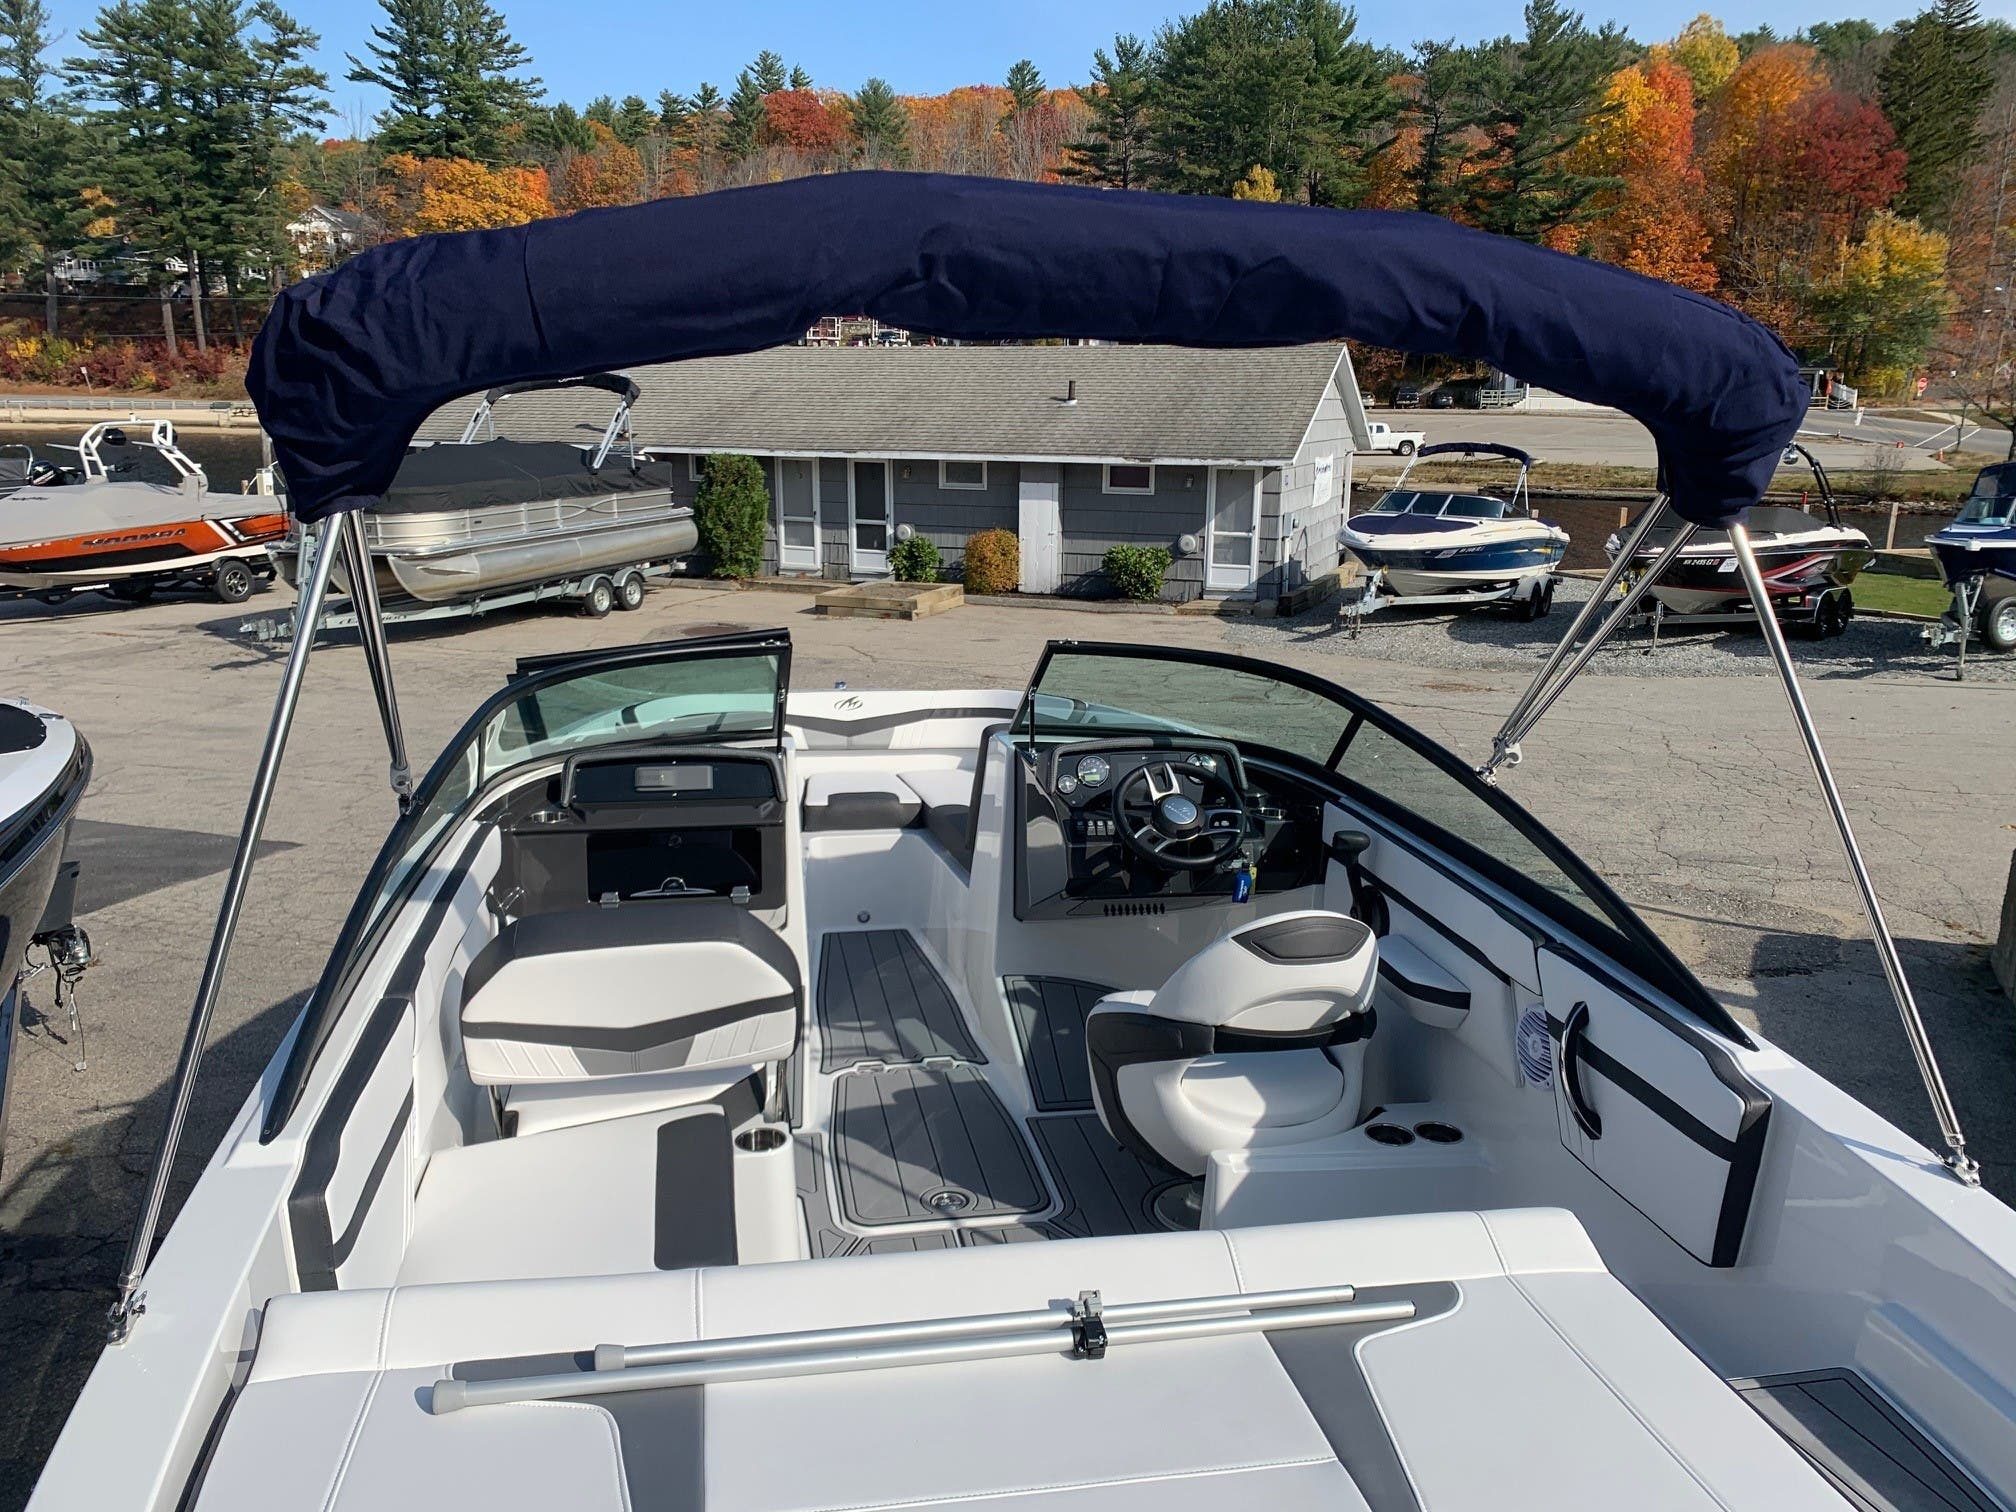 2021 Monterey boat for sale, model of the boat is M 22 & Image # 8 of 13